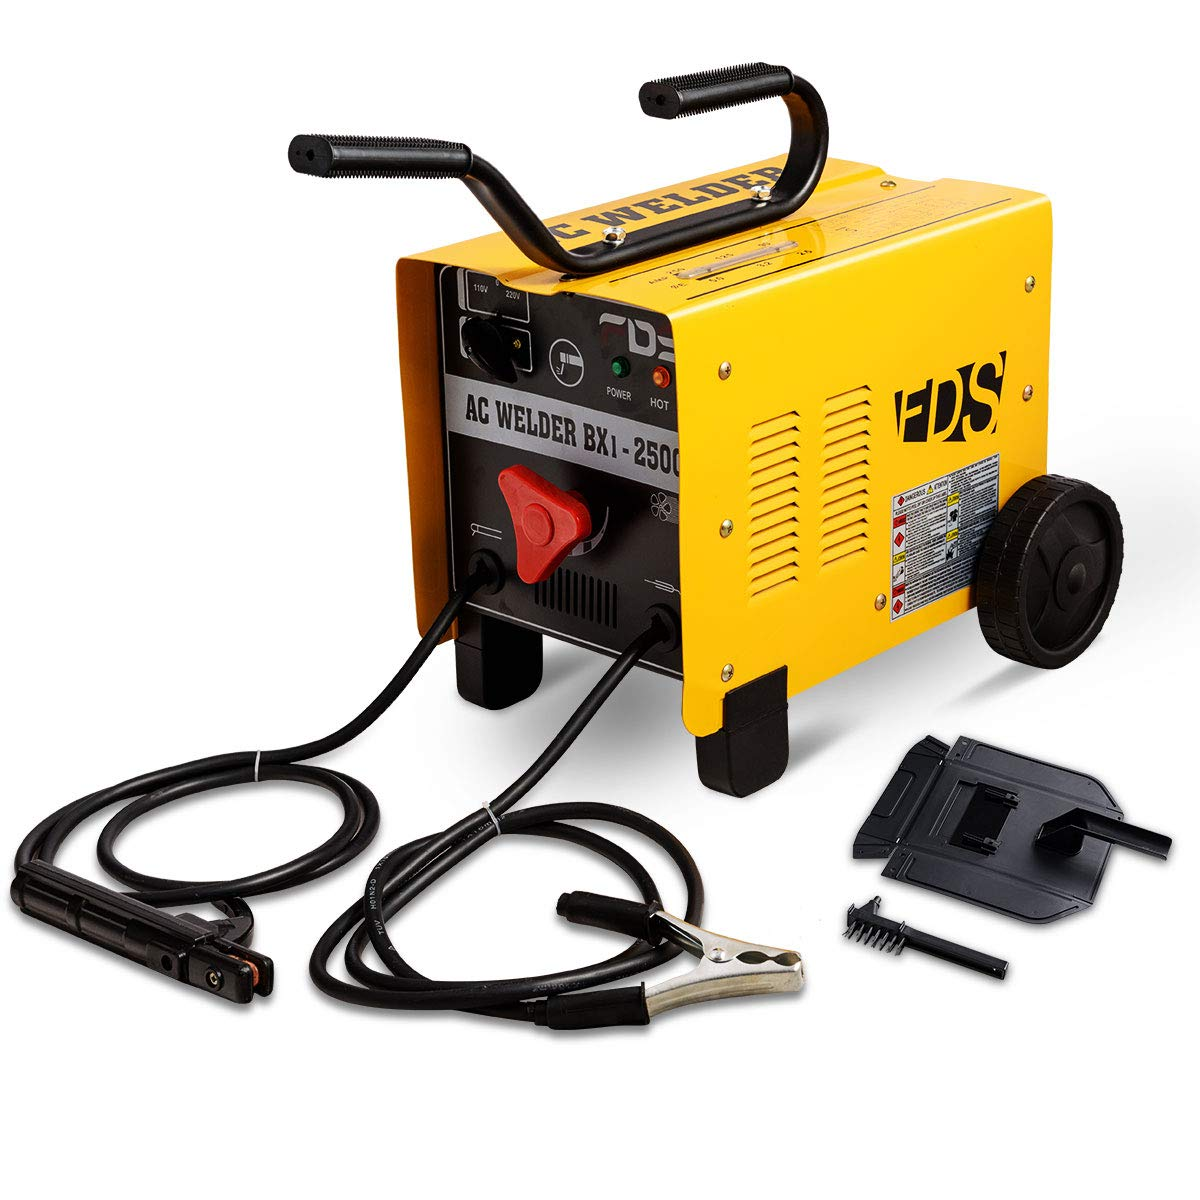 Goplus Welding Machine Soldering Accessories